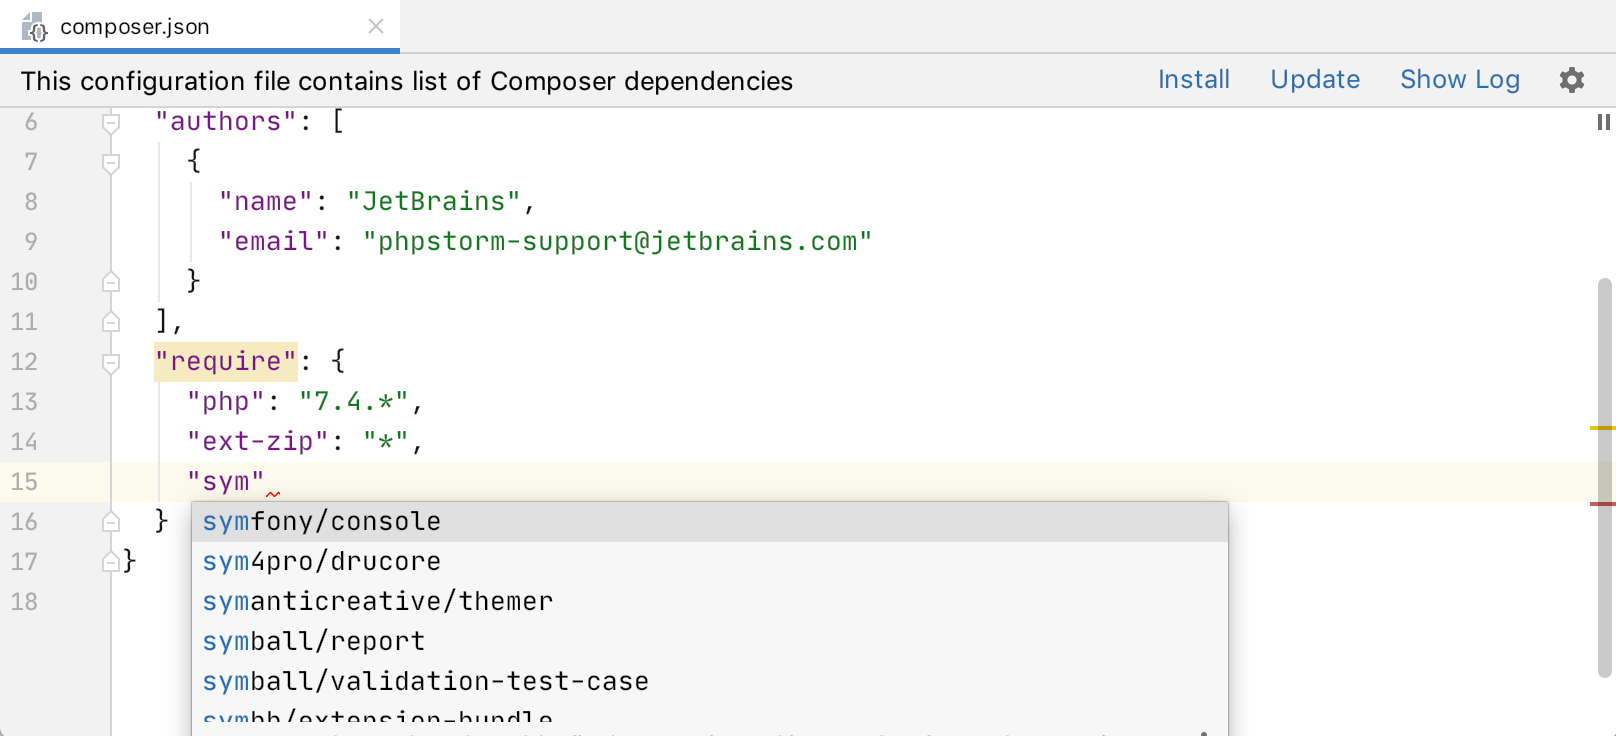 composer-json_manage_dependencies@2x